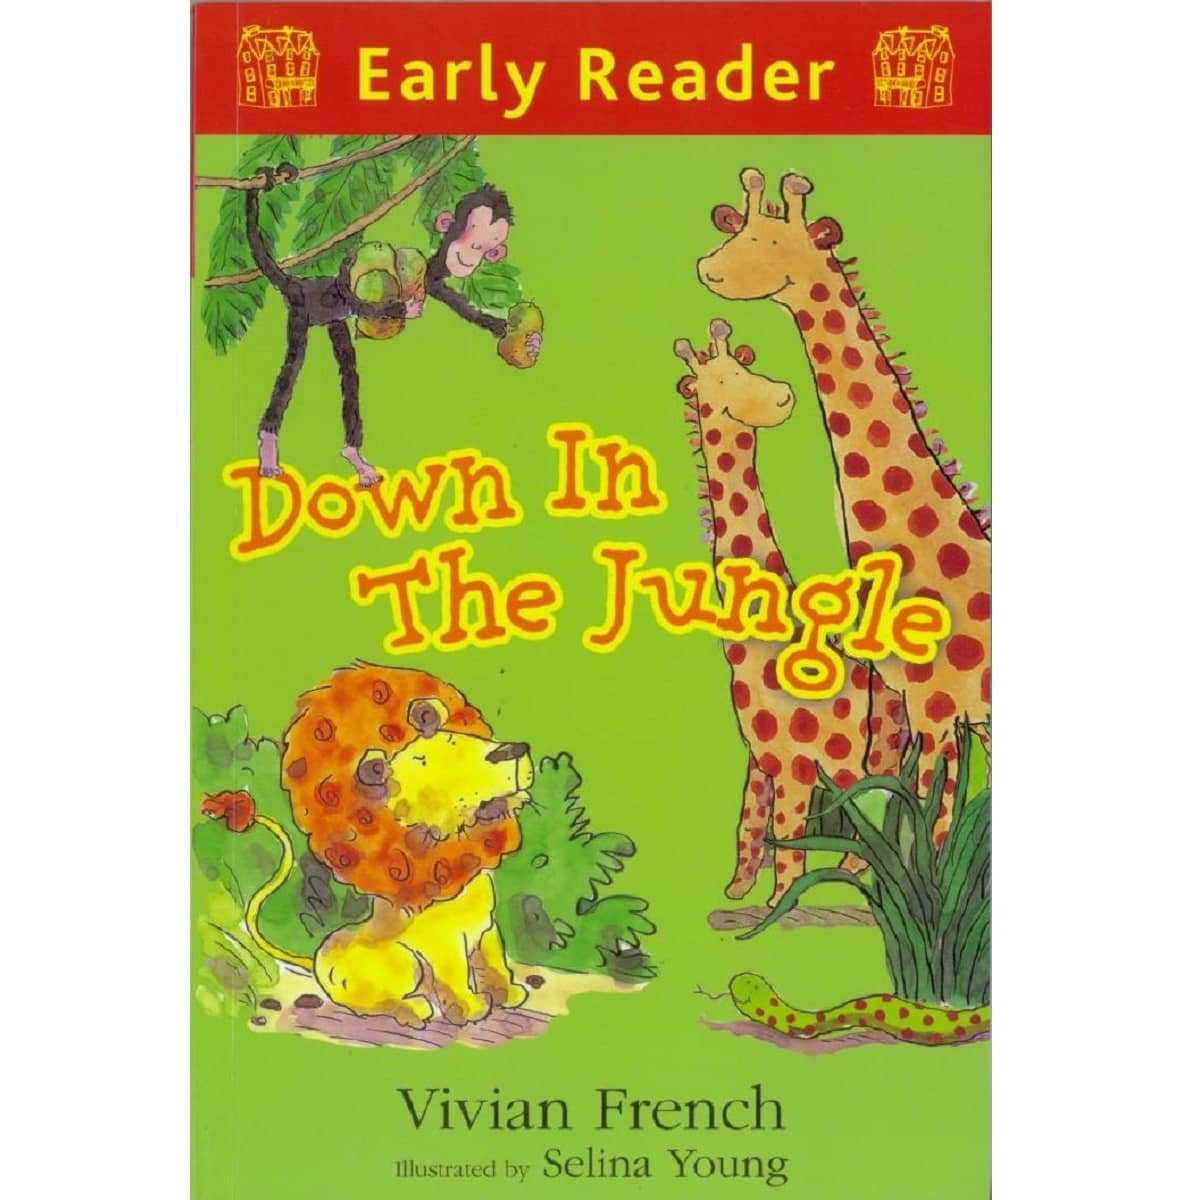 Early Reader ~ Down In The Jungle, by Vivian French